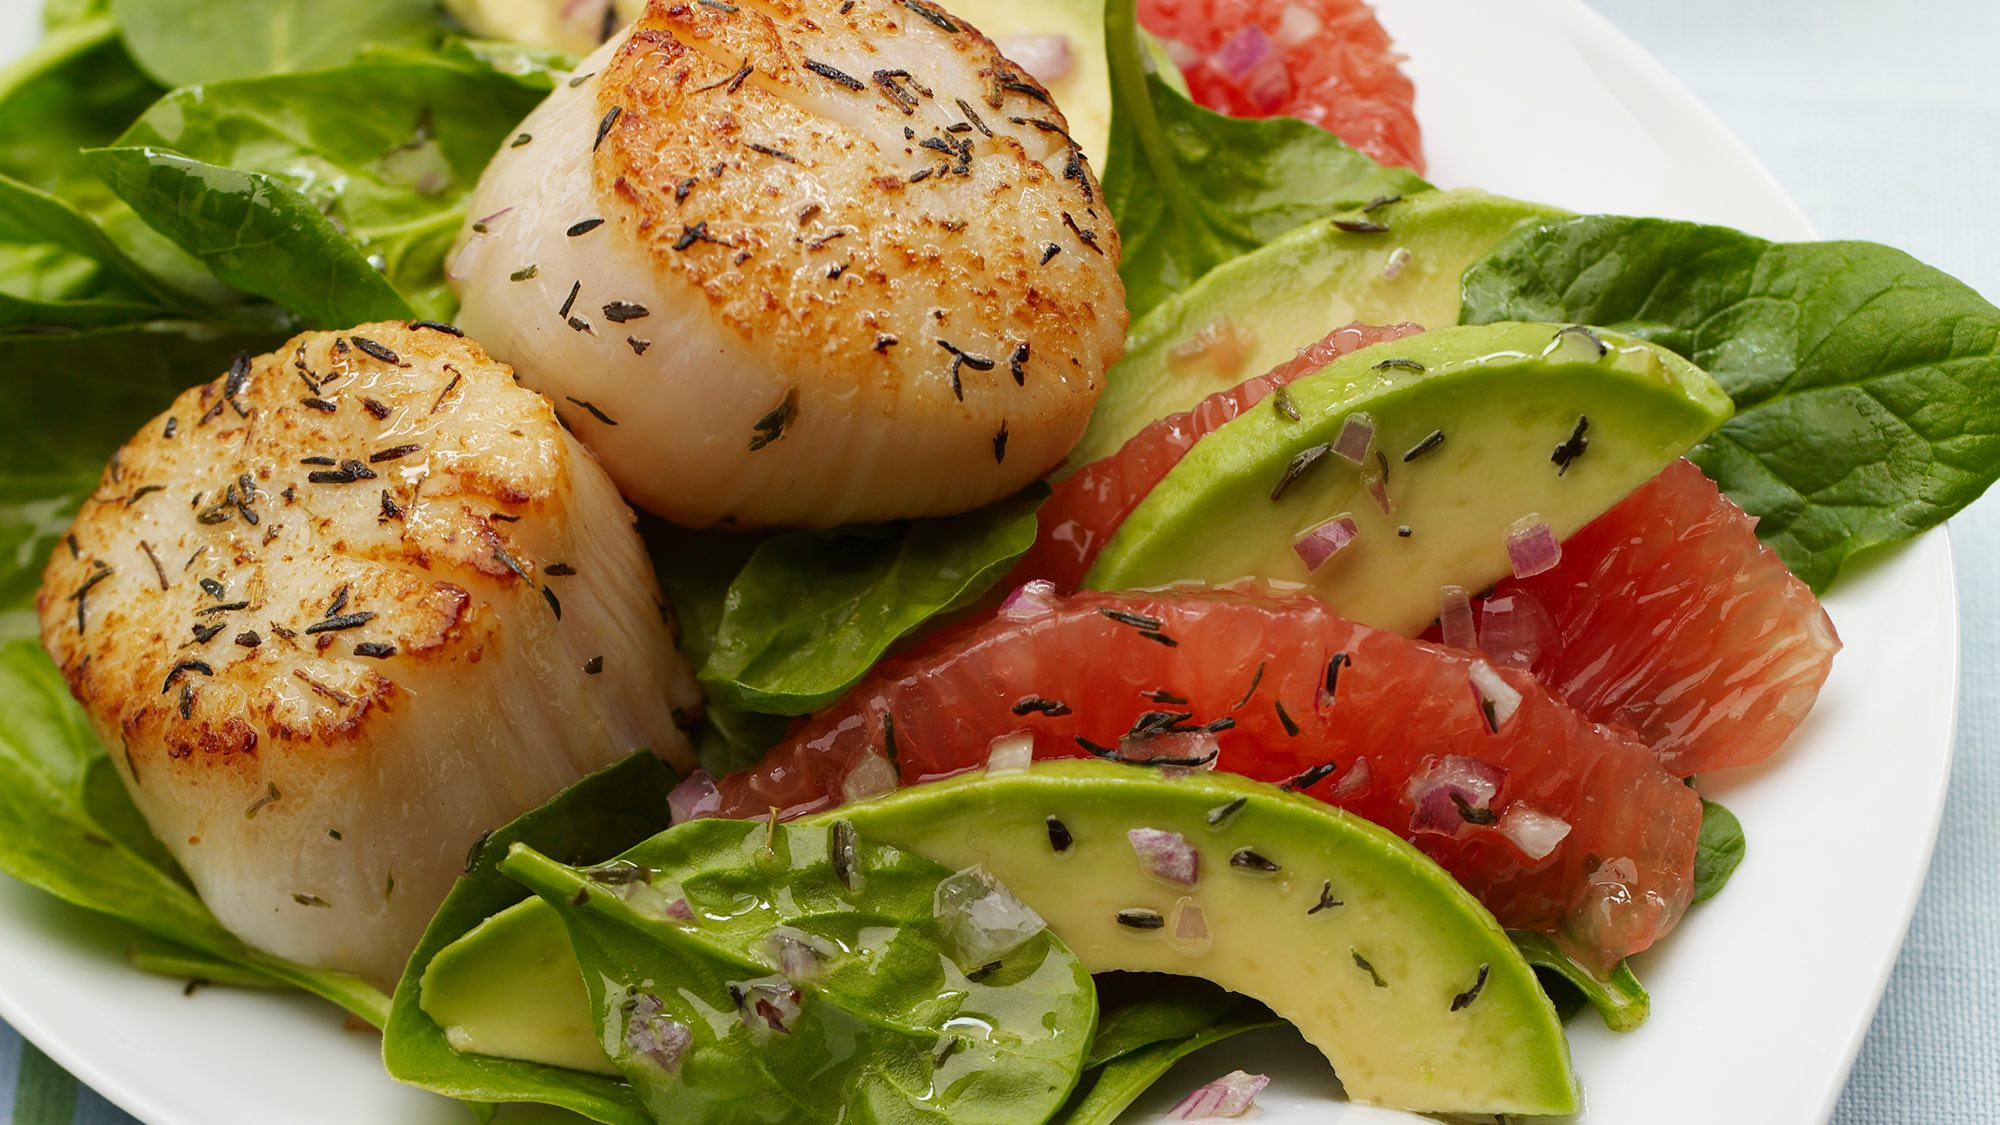 seared-scallops-with-red-grapefruit-avocado-salad.jpg